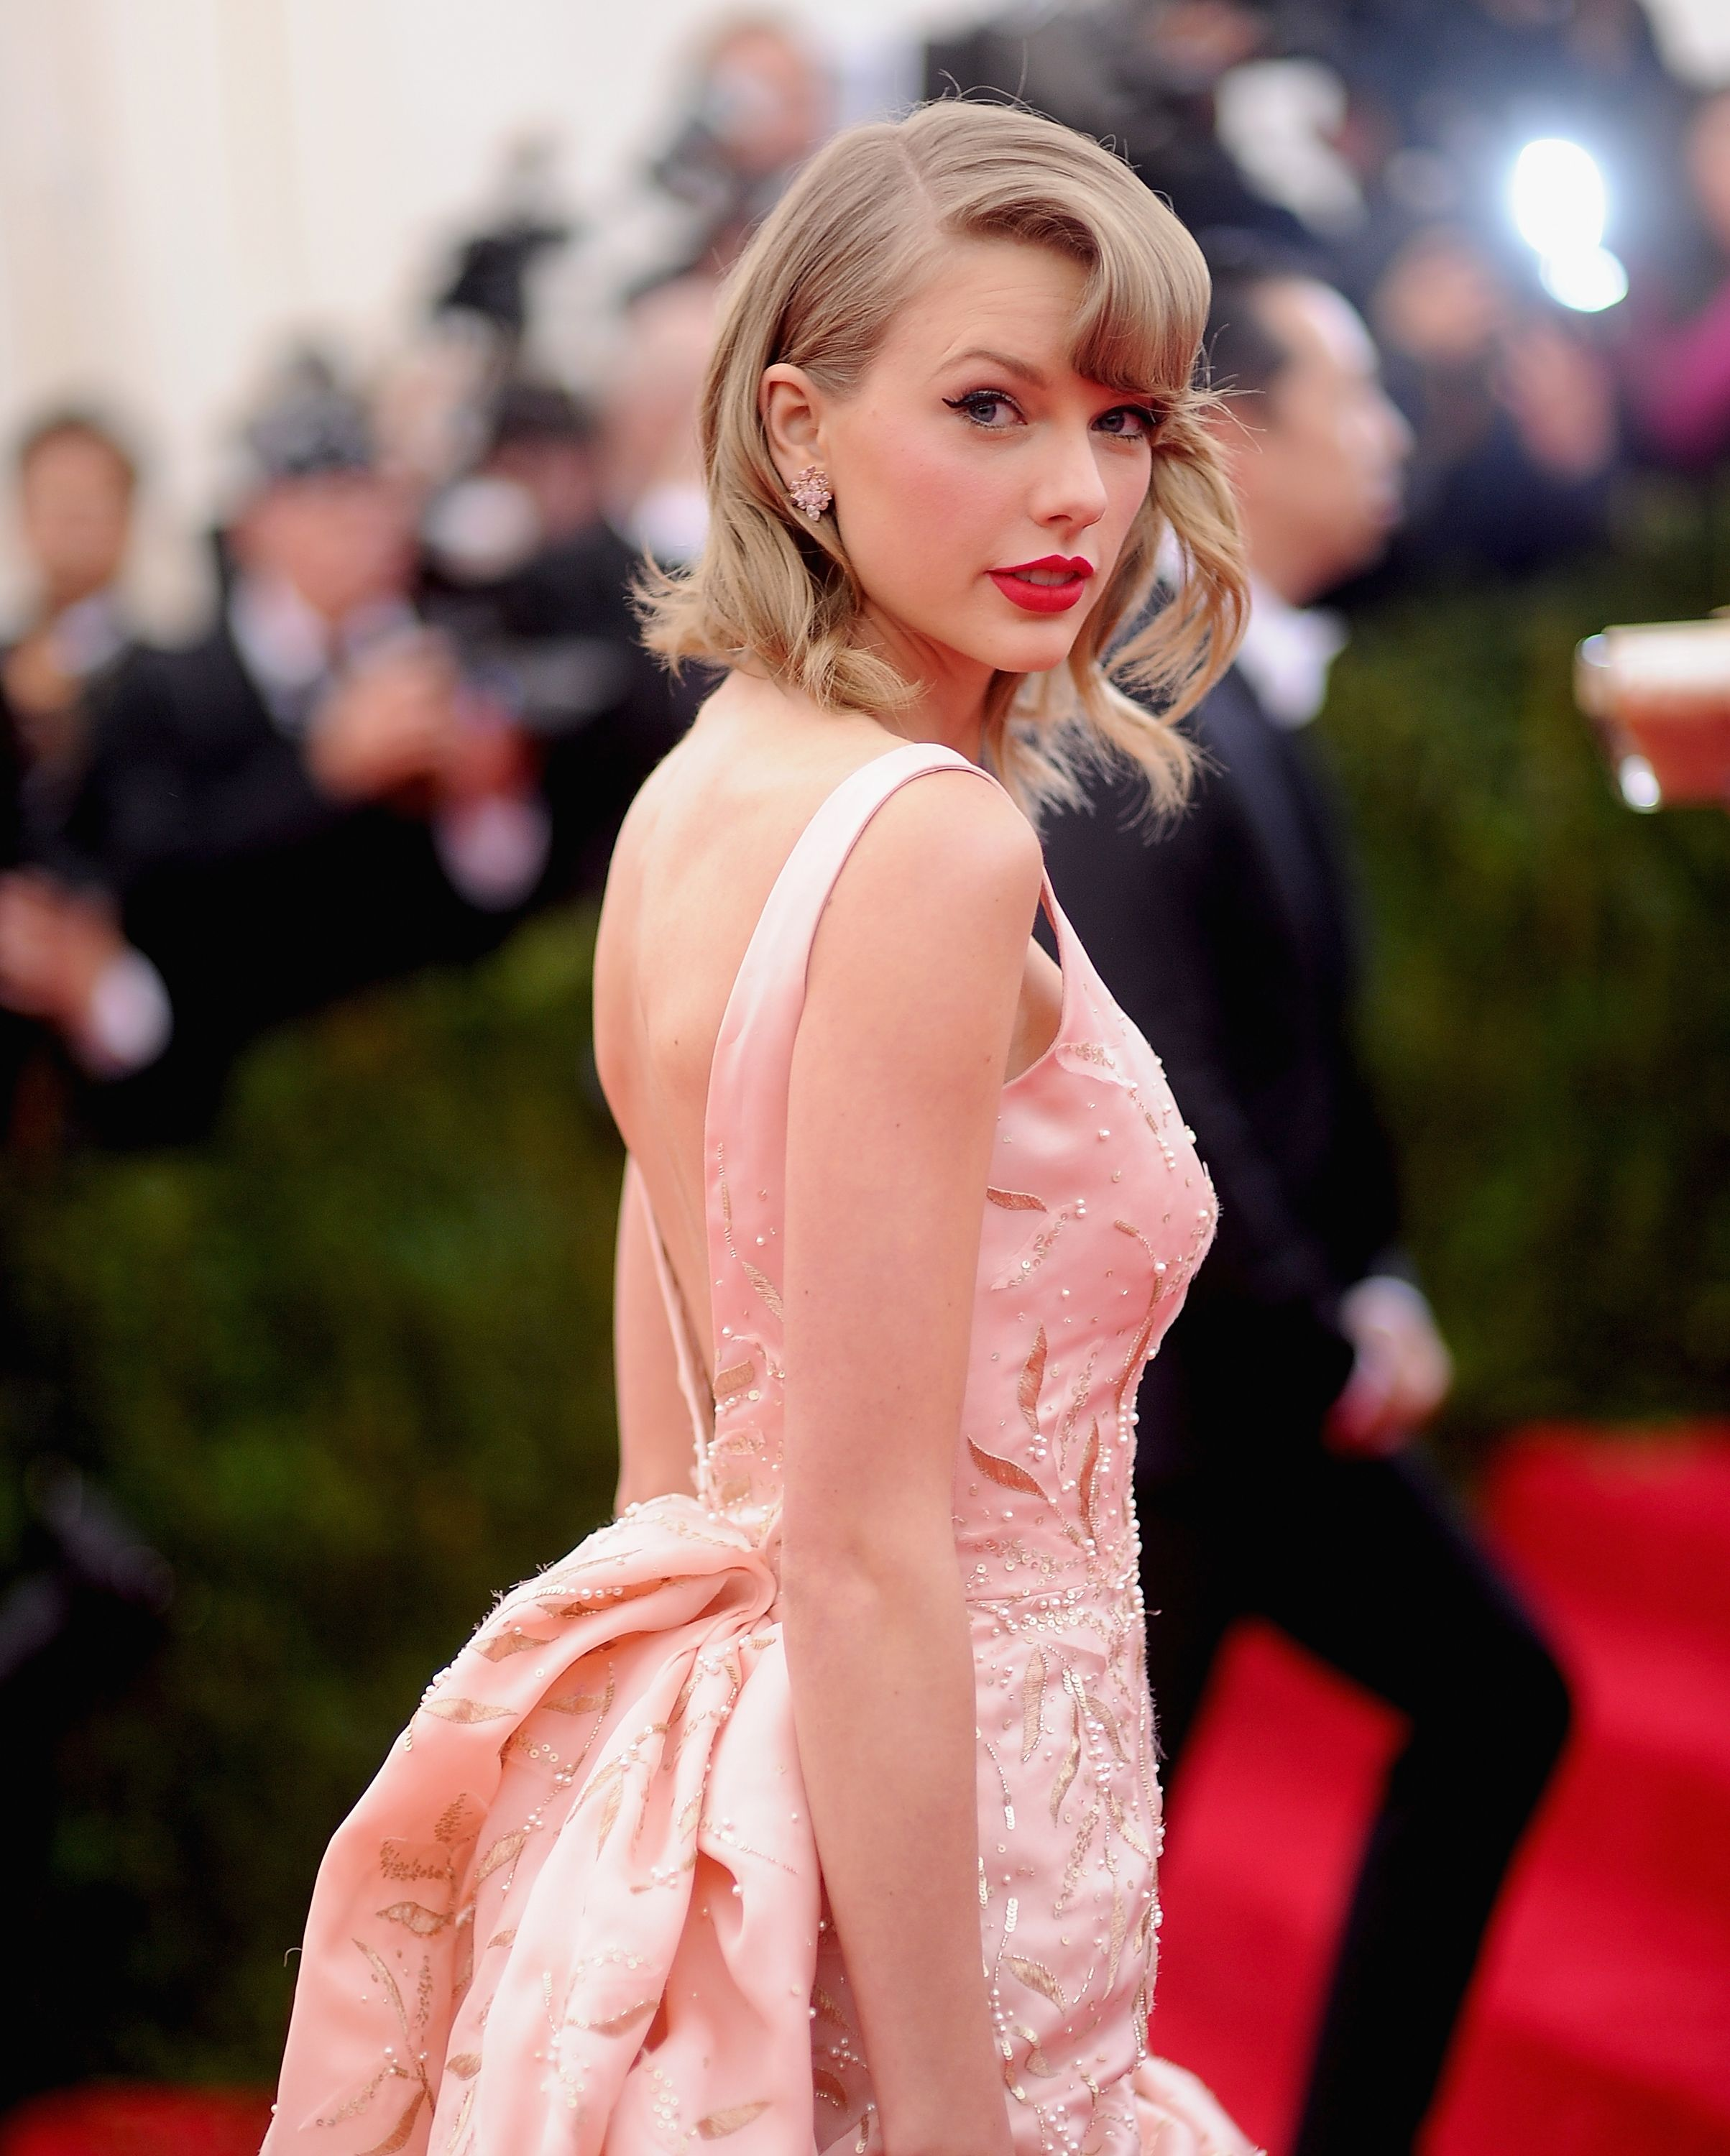 Taylor Swift, Savannah Guthrie Weigh In On Twitter Debate Over Washing Legs In The Shower